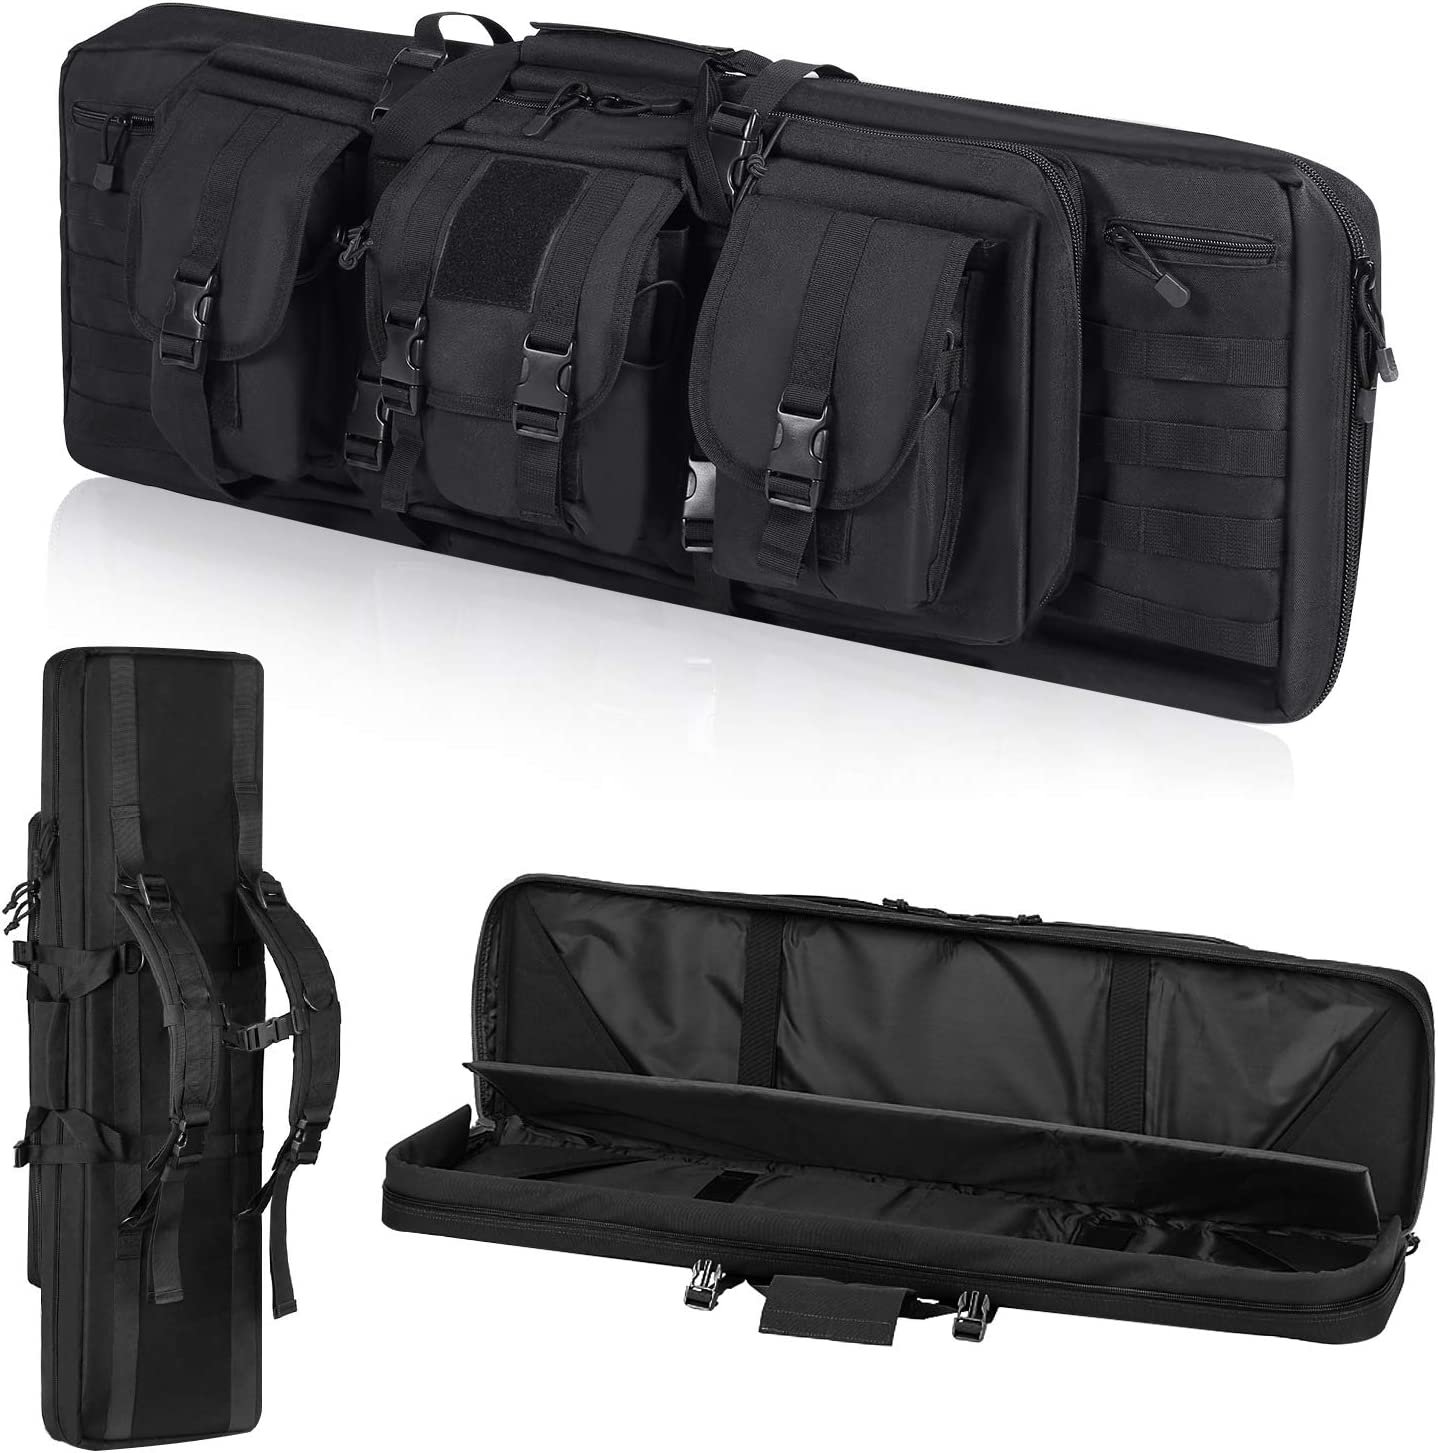 ORHFS Double Long Soft Rifle Durable Tact Denver Mall discount Case Classic American